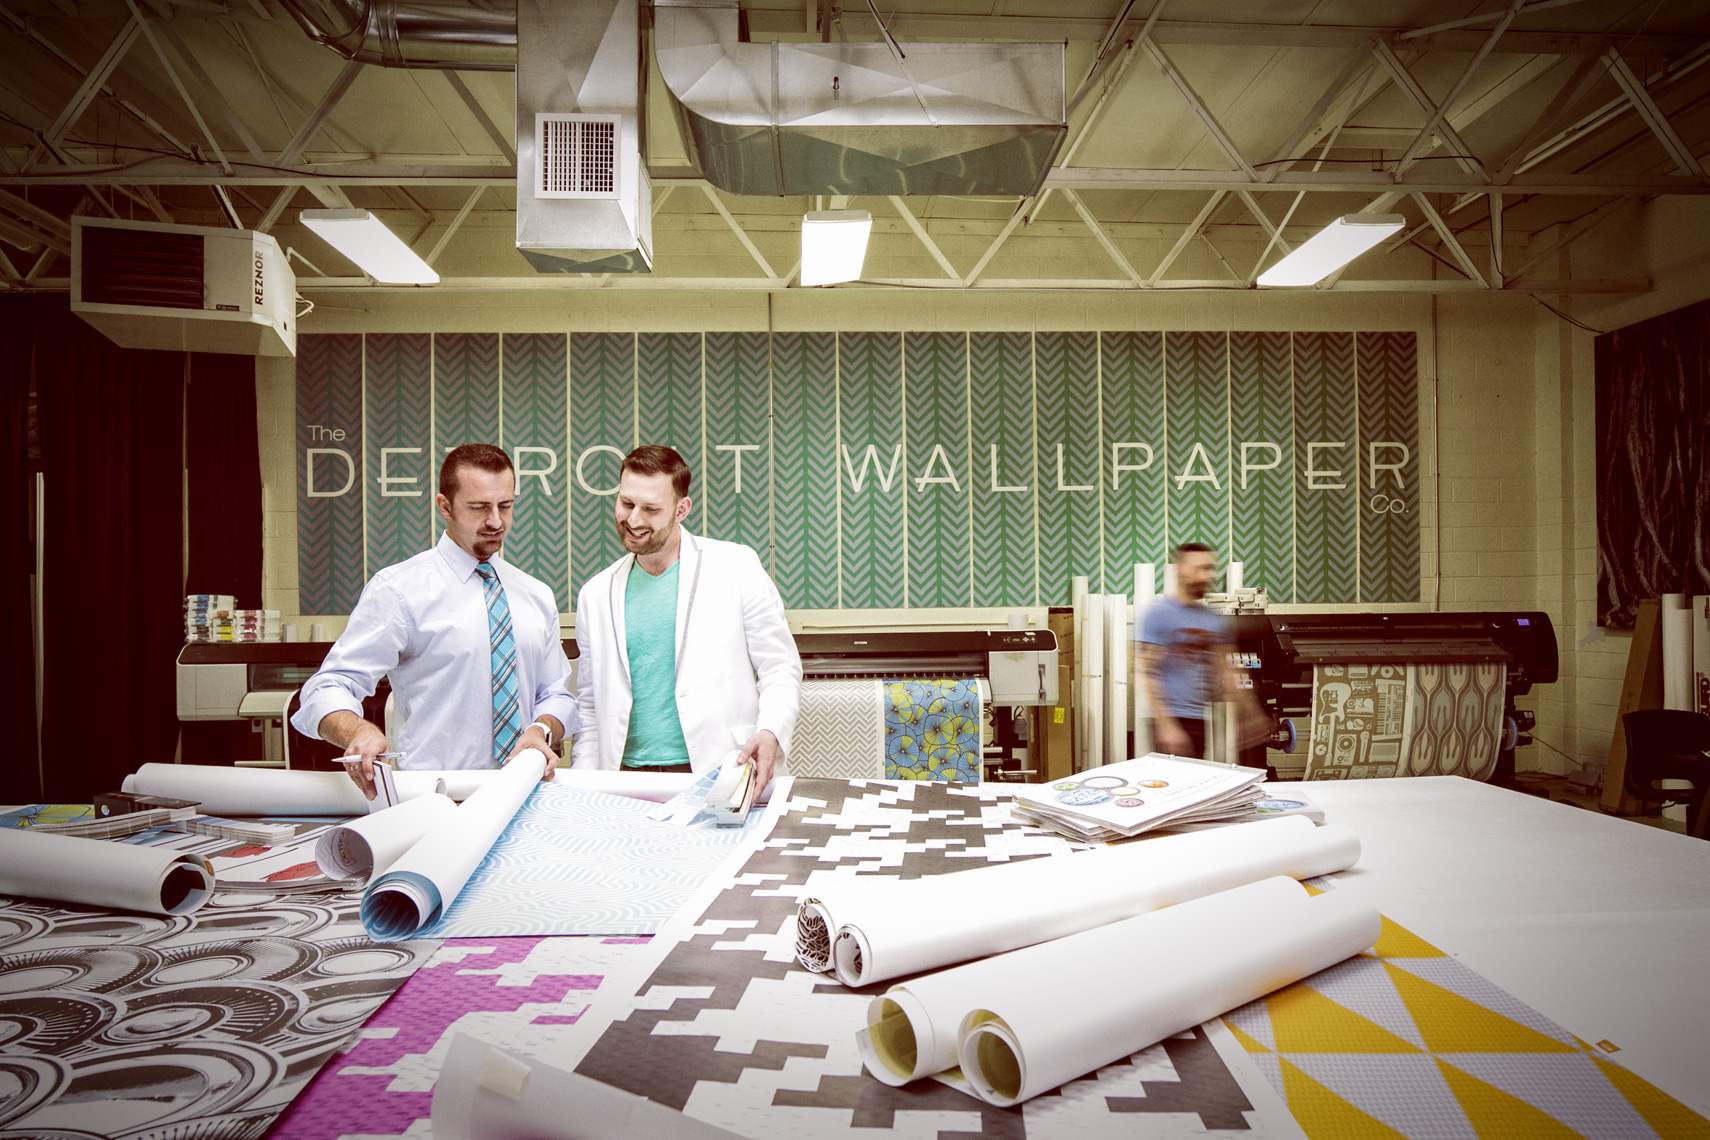 Detroit Wallpaper Company-Ferndale